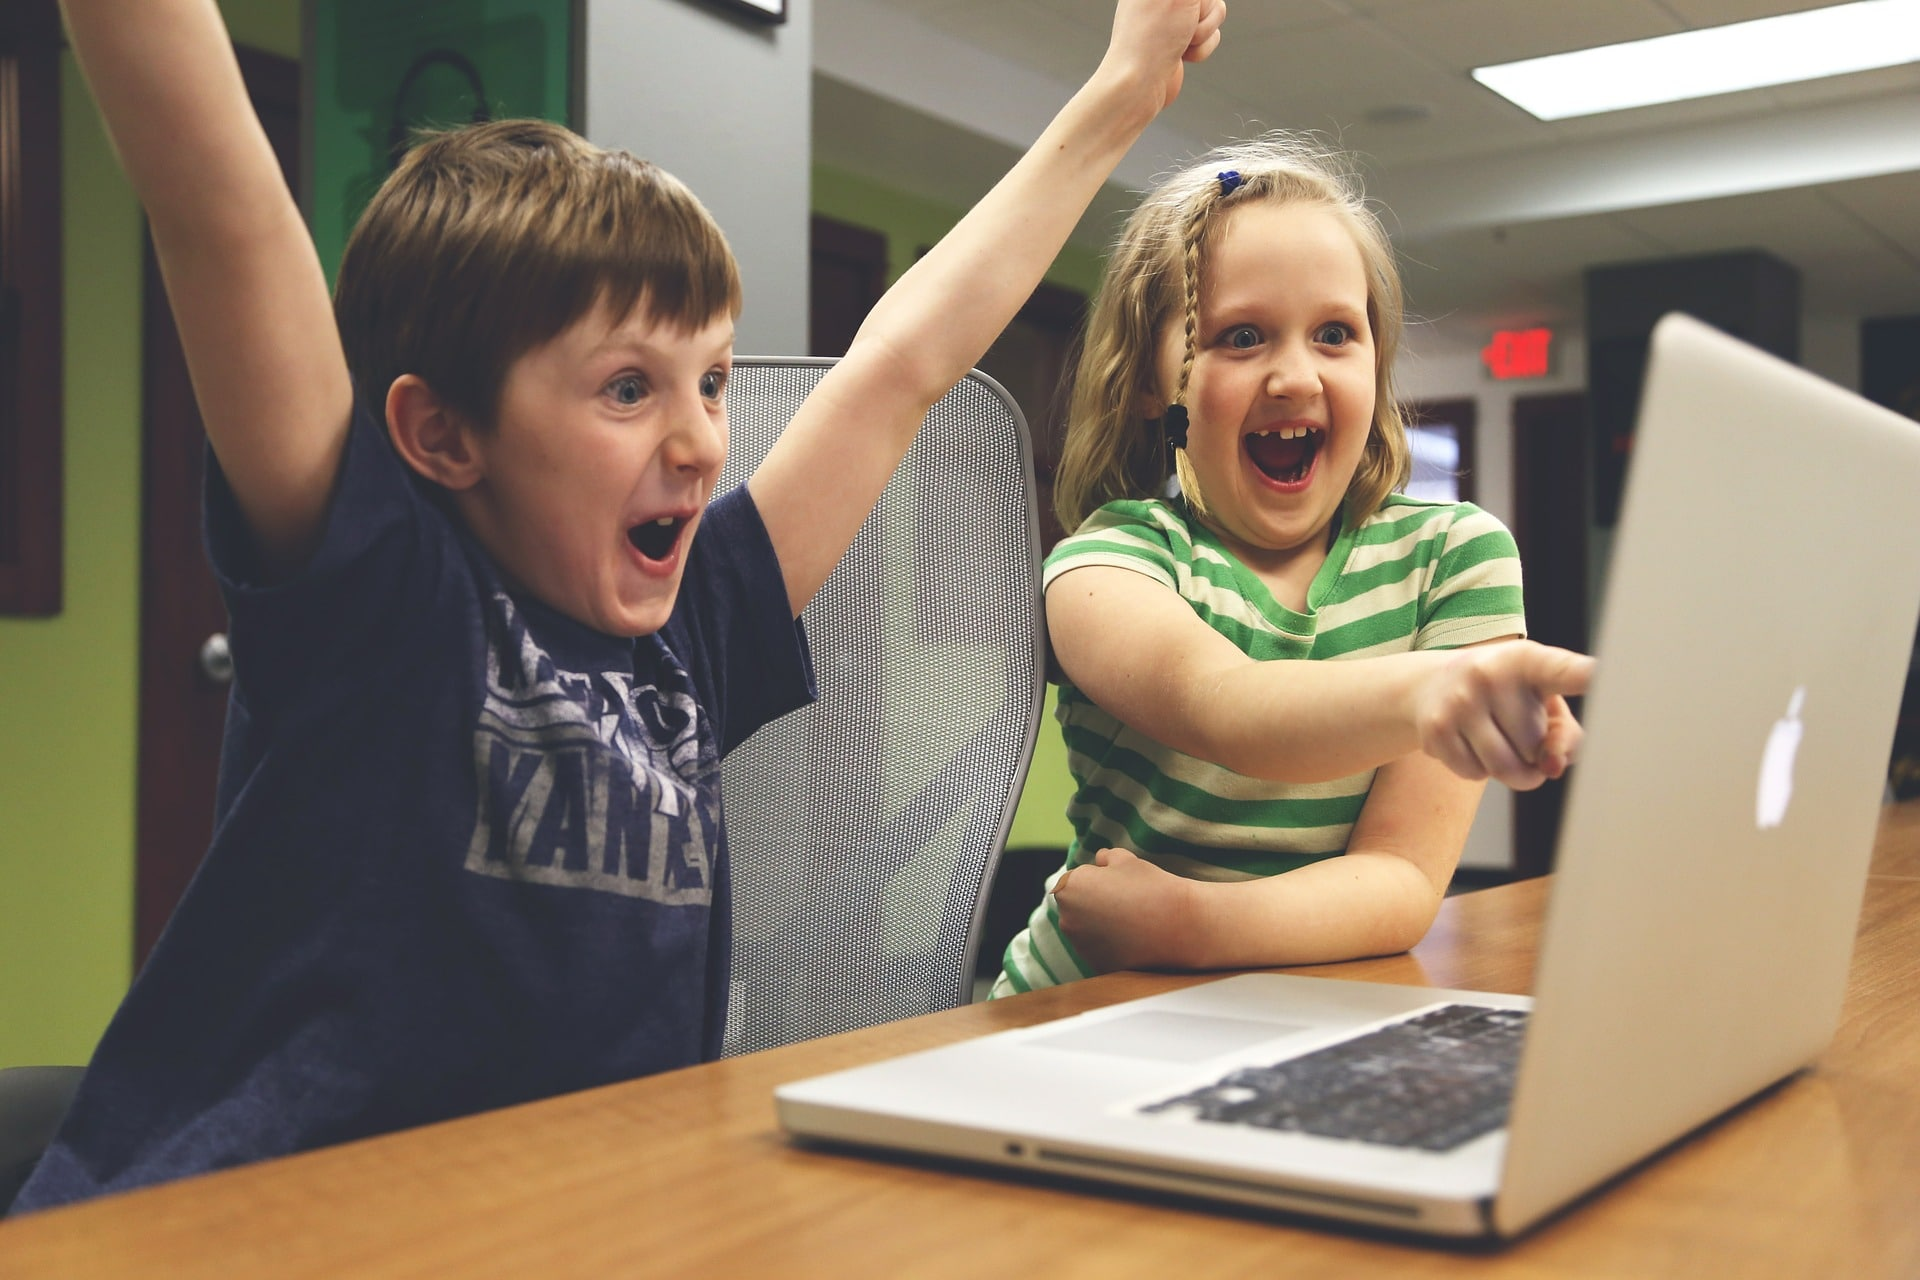 Photo of 2 children excitedly watching a video on a laptop.